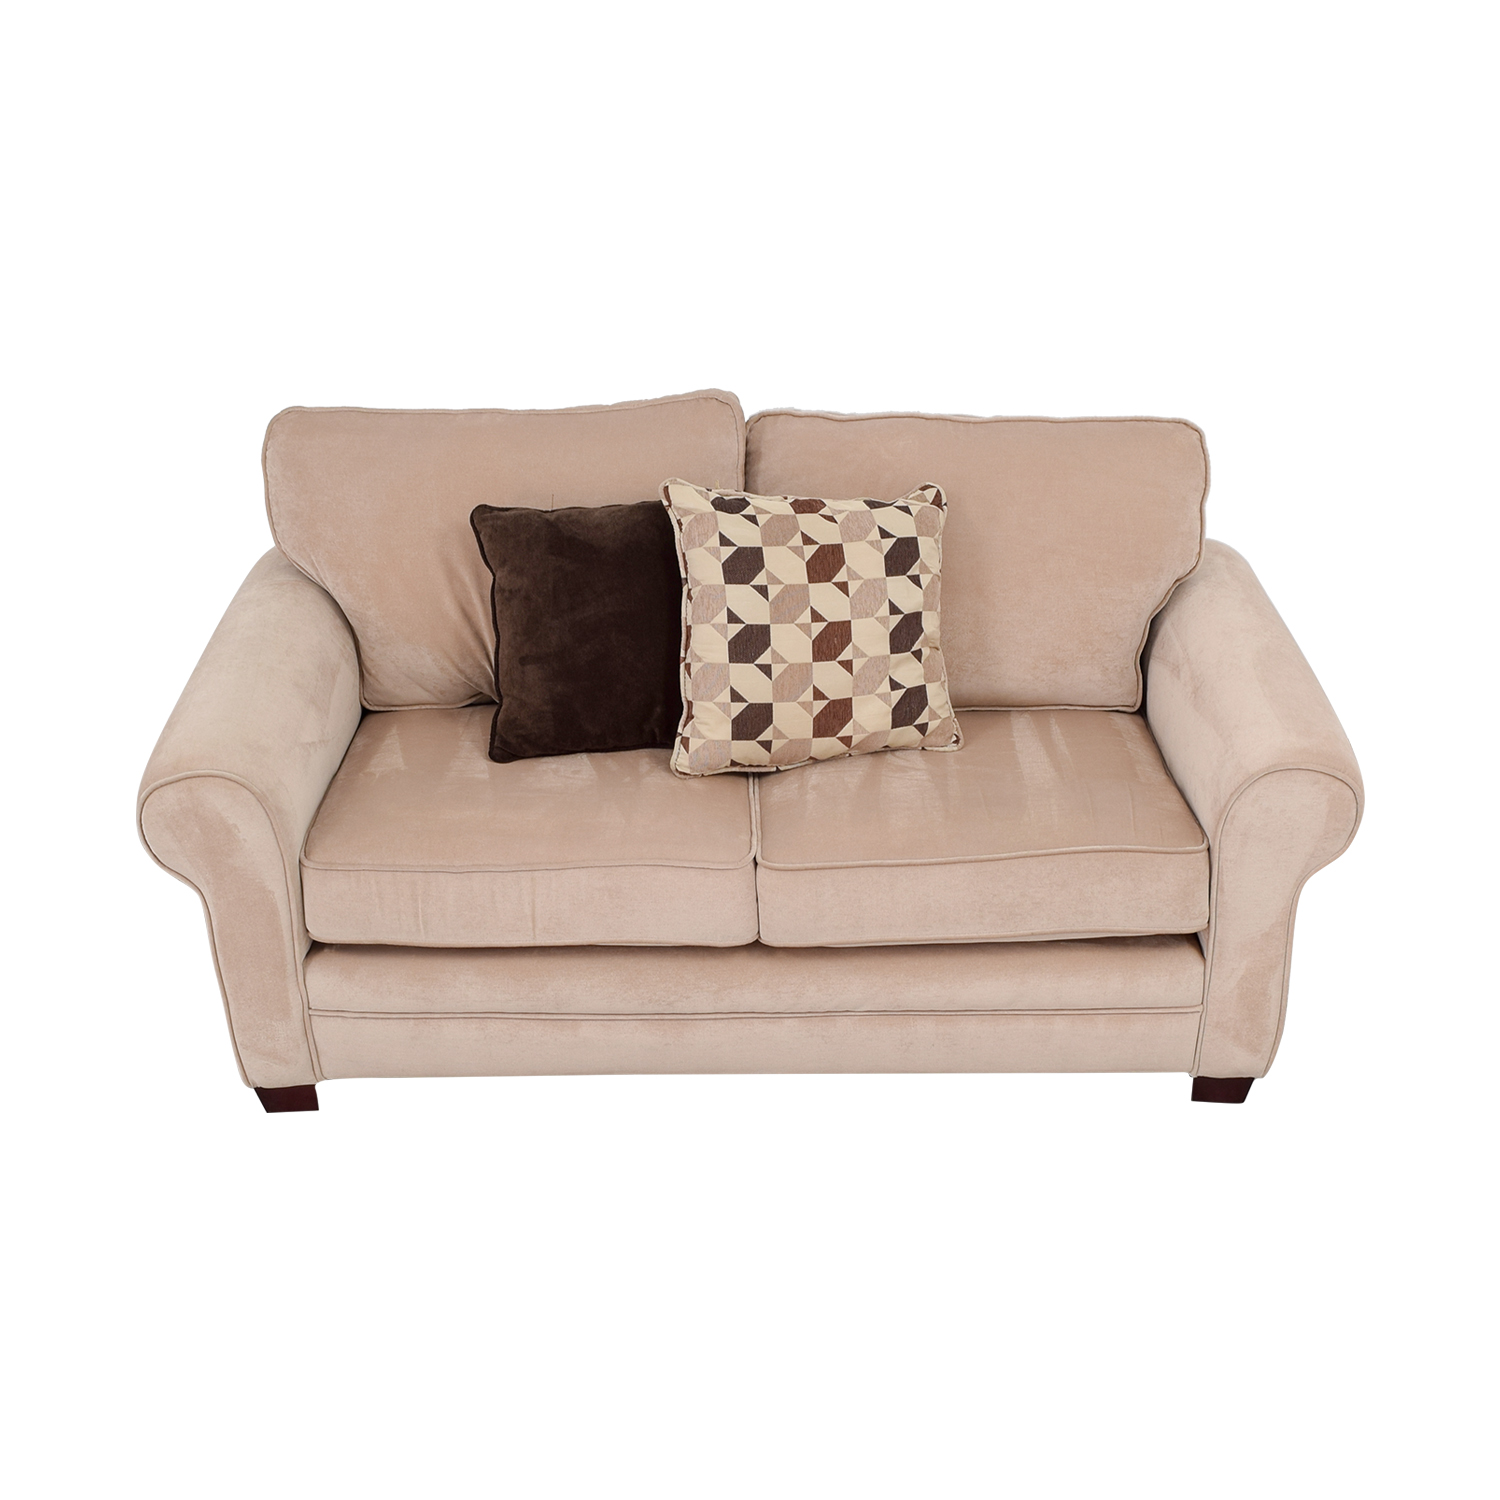 Bob's Furniture Bob's Furniture Maggie II Beige Two-Cushion Loveseat nj